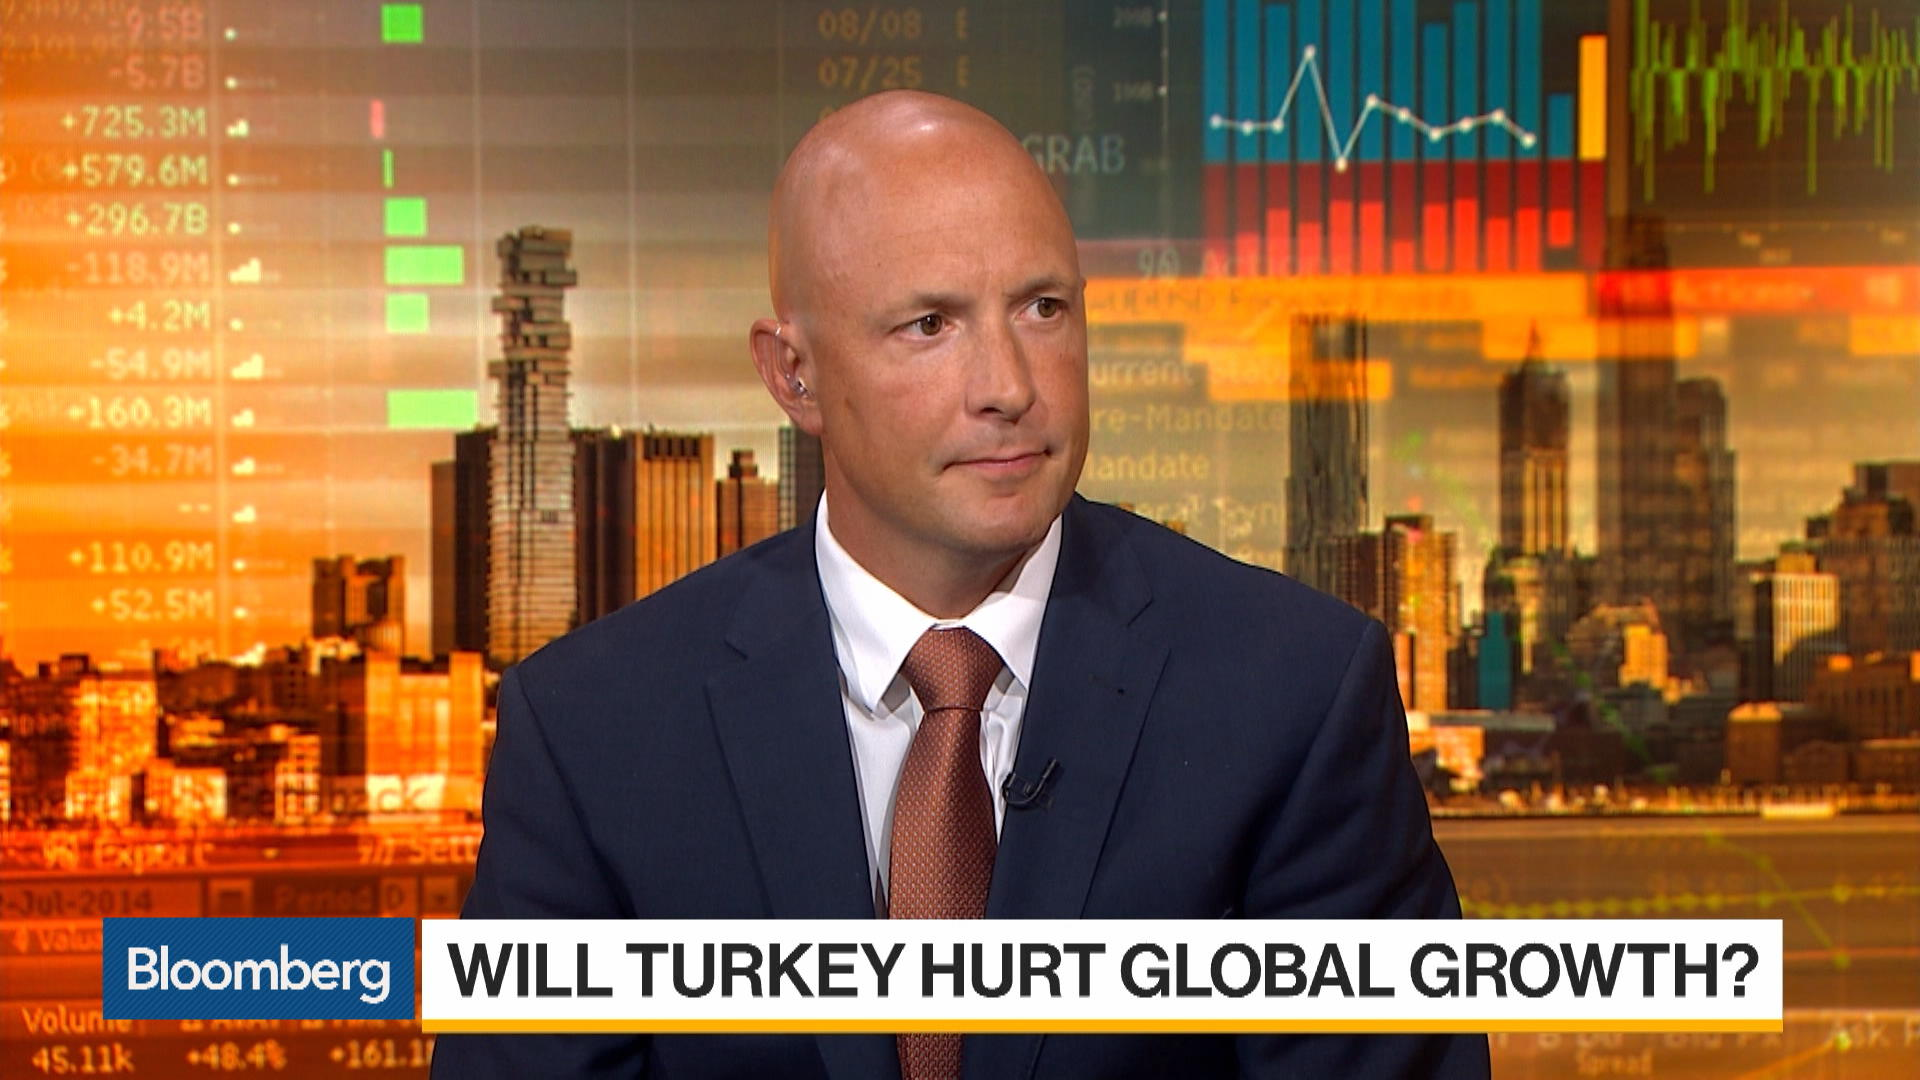 Dr. Copper is Key – Bloomberg